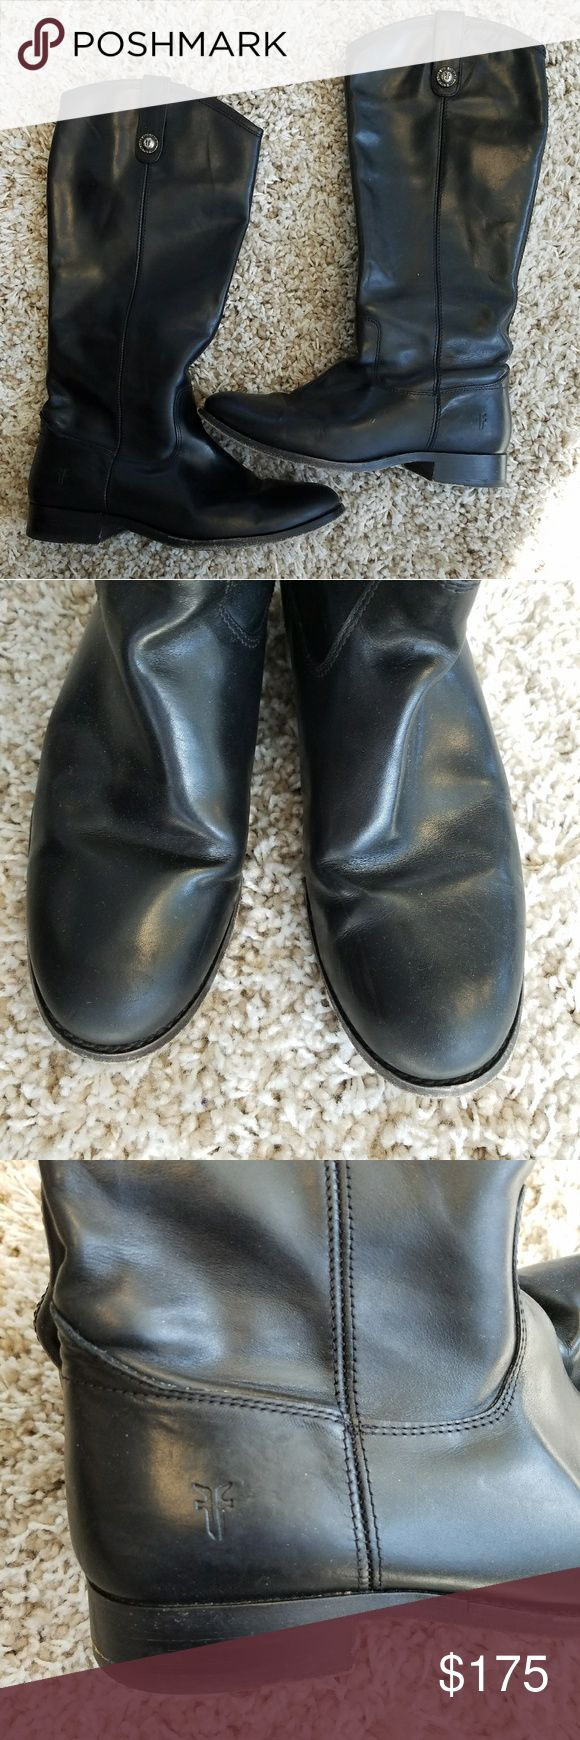 Frye Riding Boots Great condition! I still can't believe how soft and amazing the leather looks. Open to offers! Frye Shoes